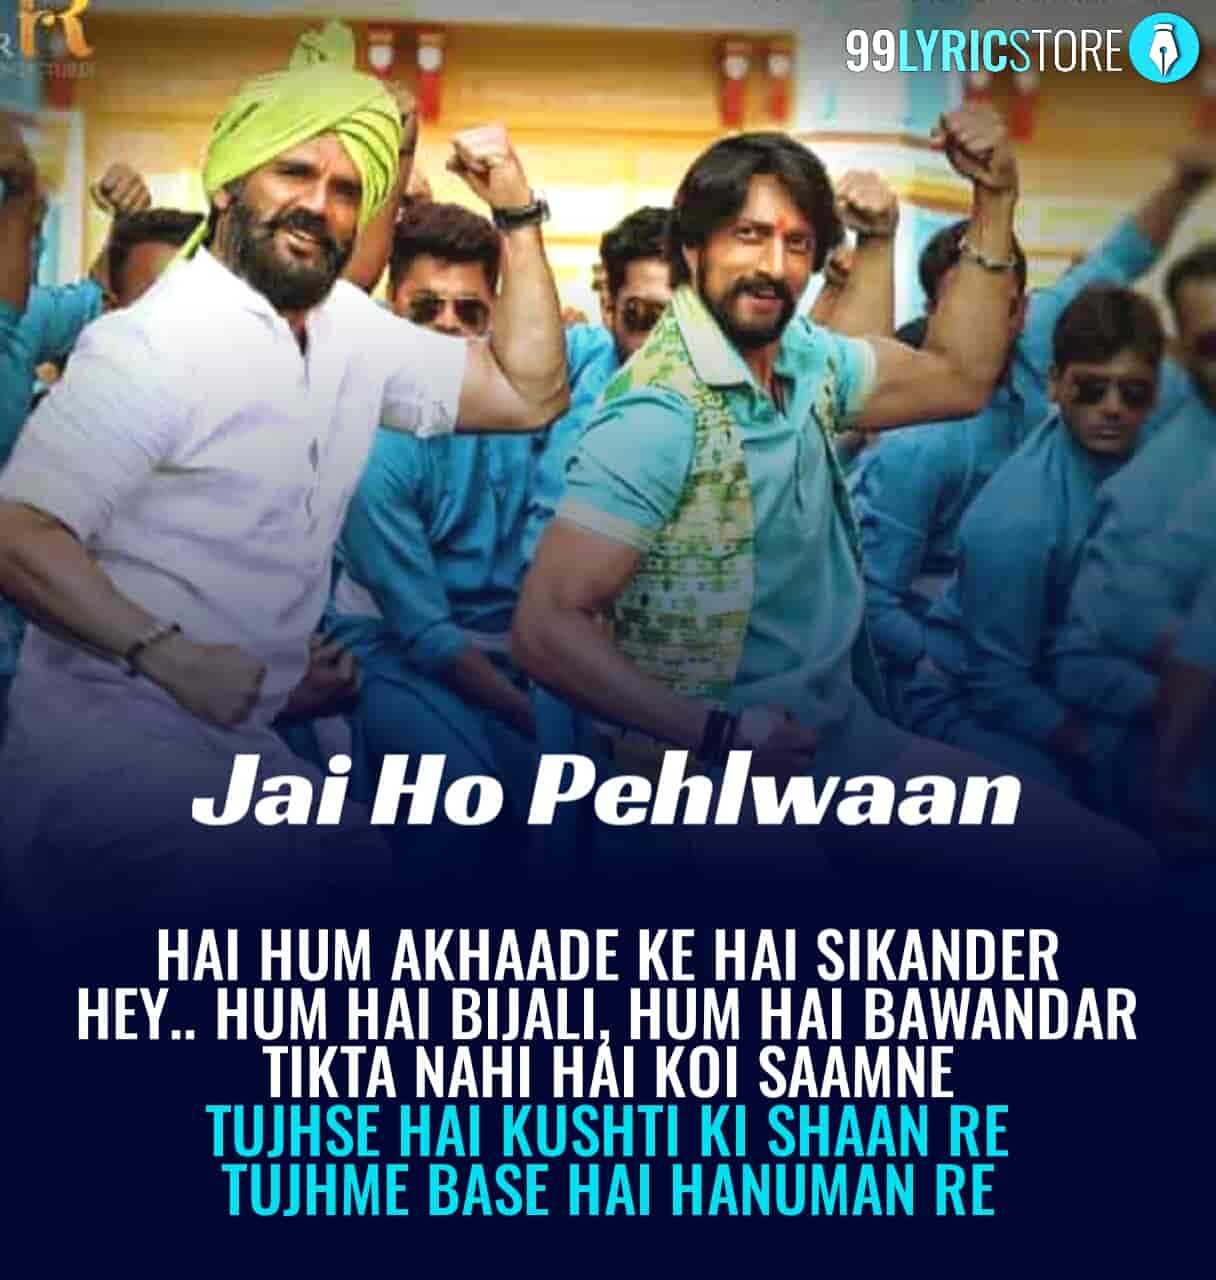 Jai ho pehlwaan song from movie pehlwaan